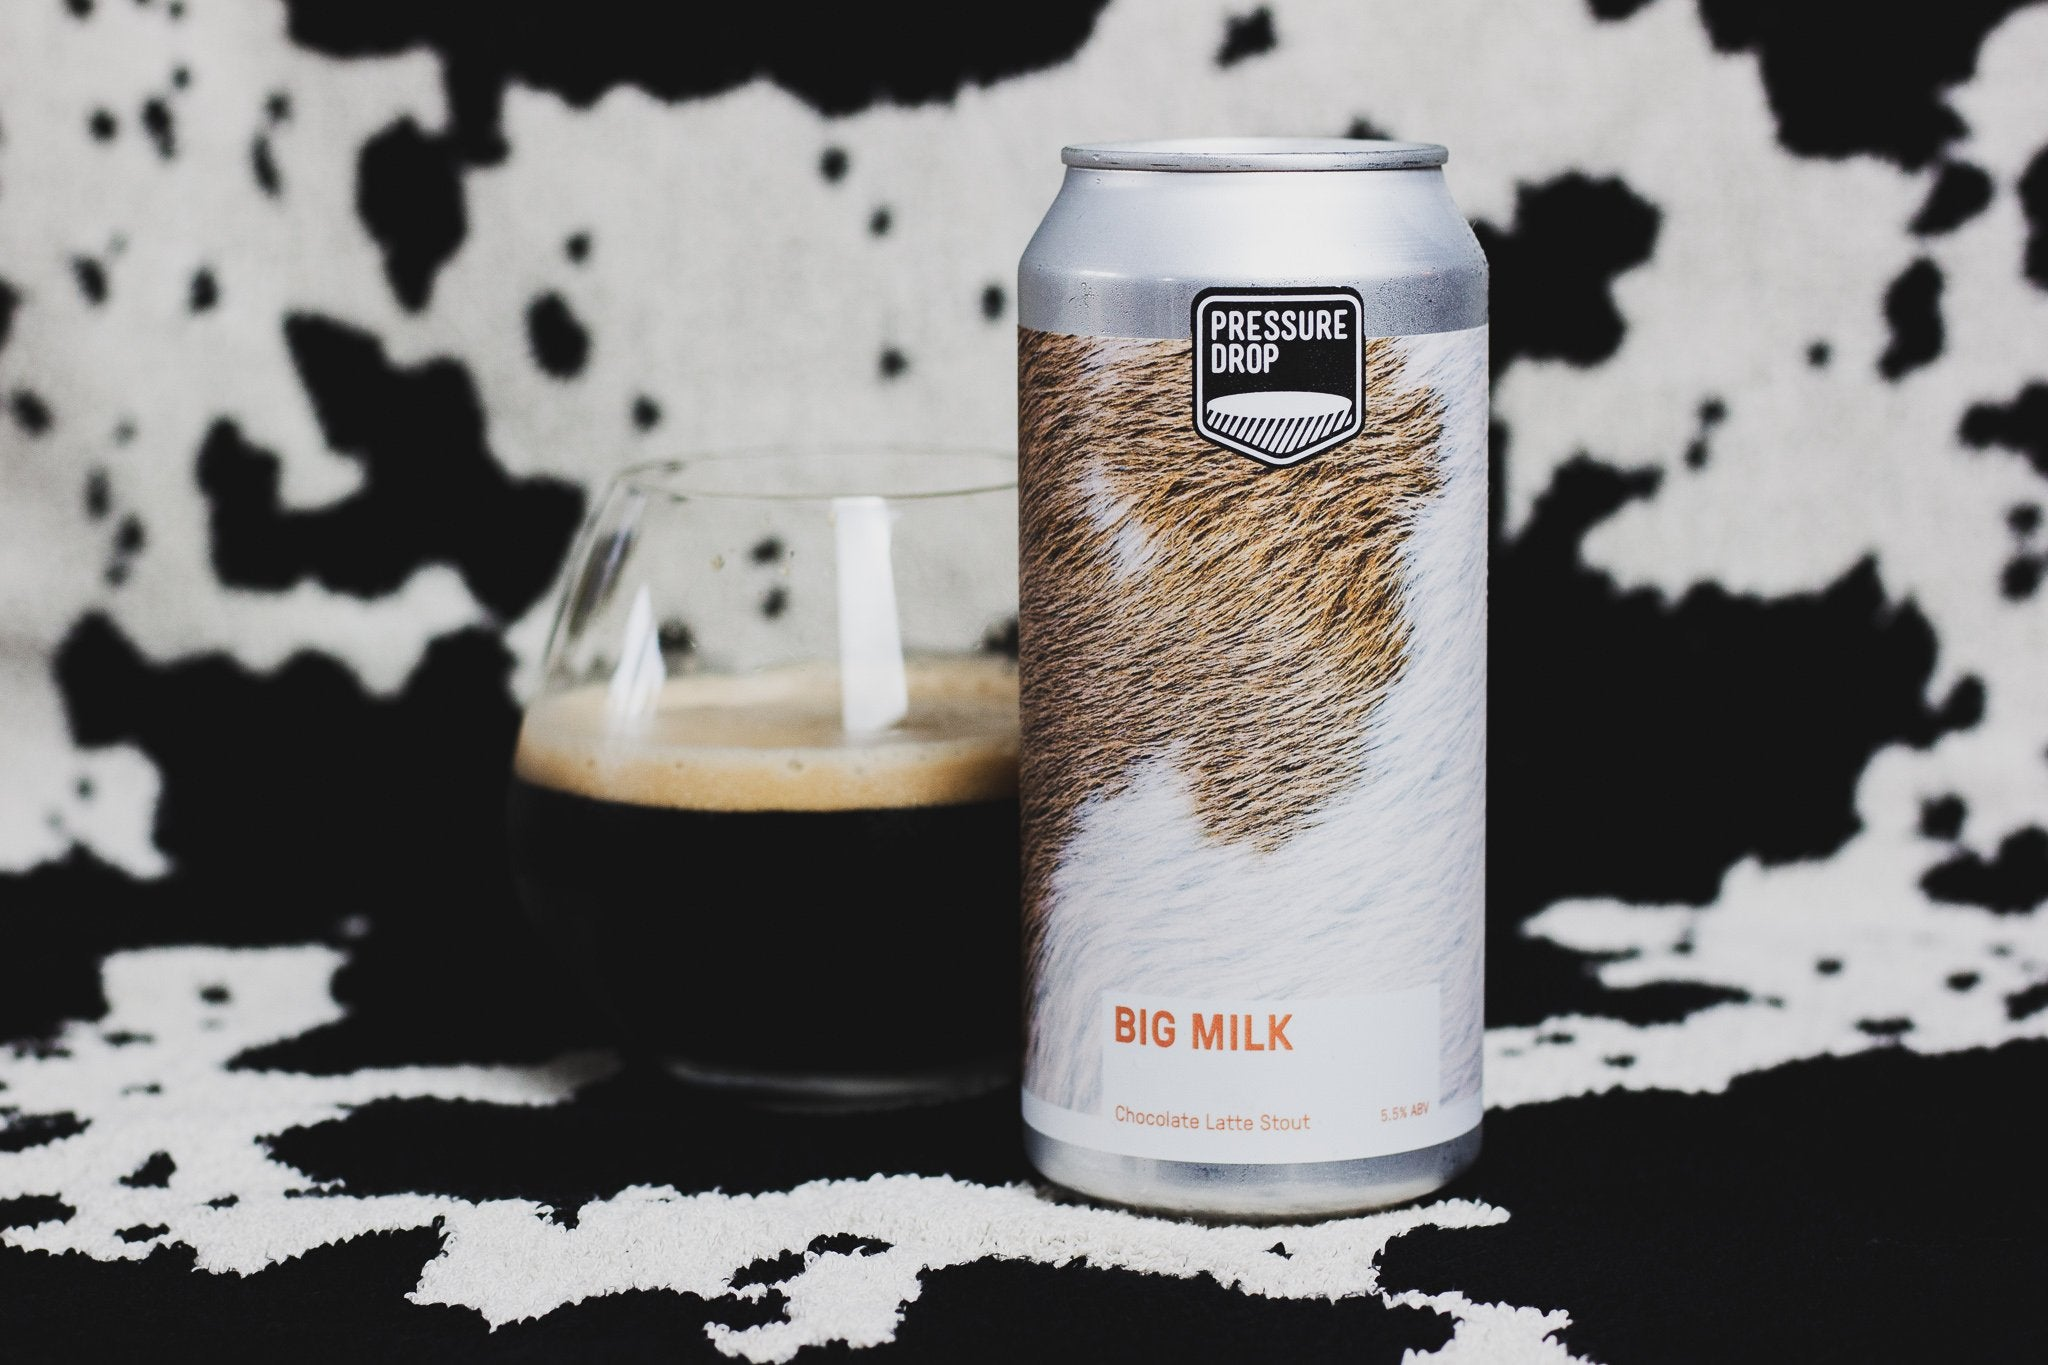 Big Milk- Chocolate Latte Stout - Stout